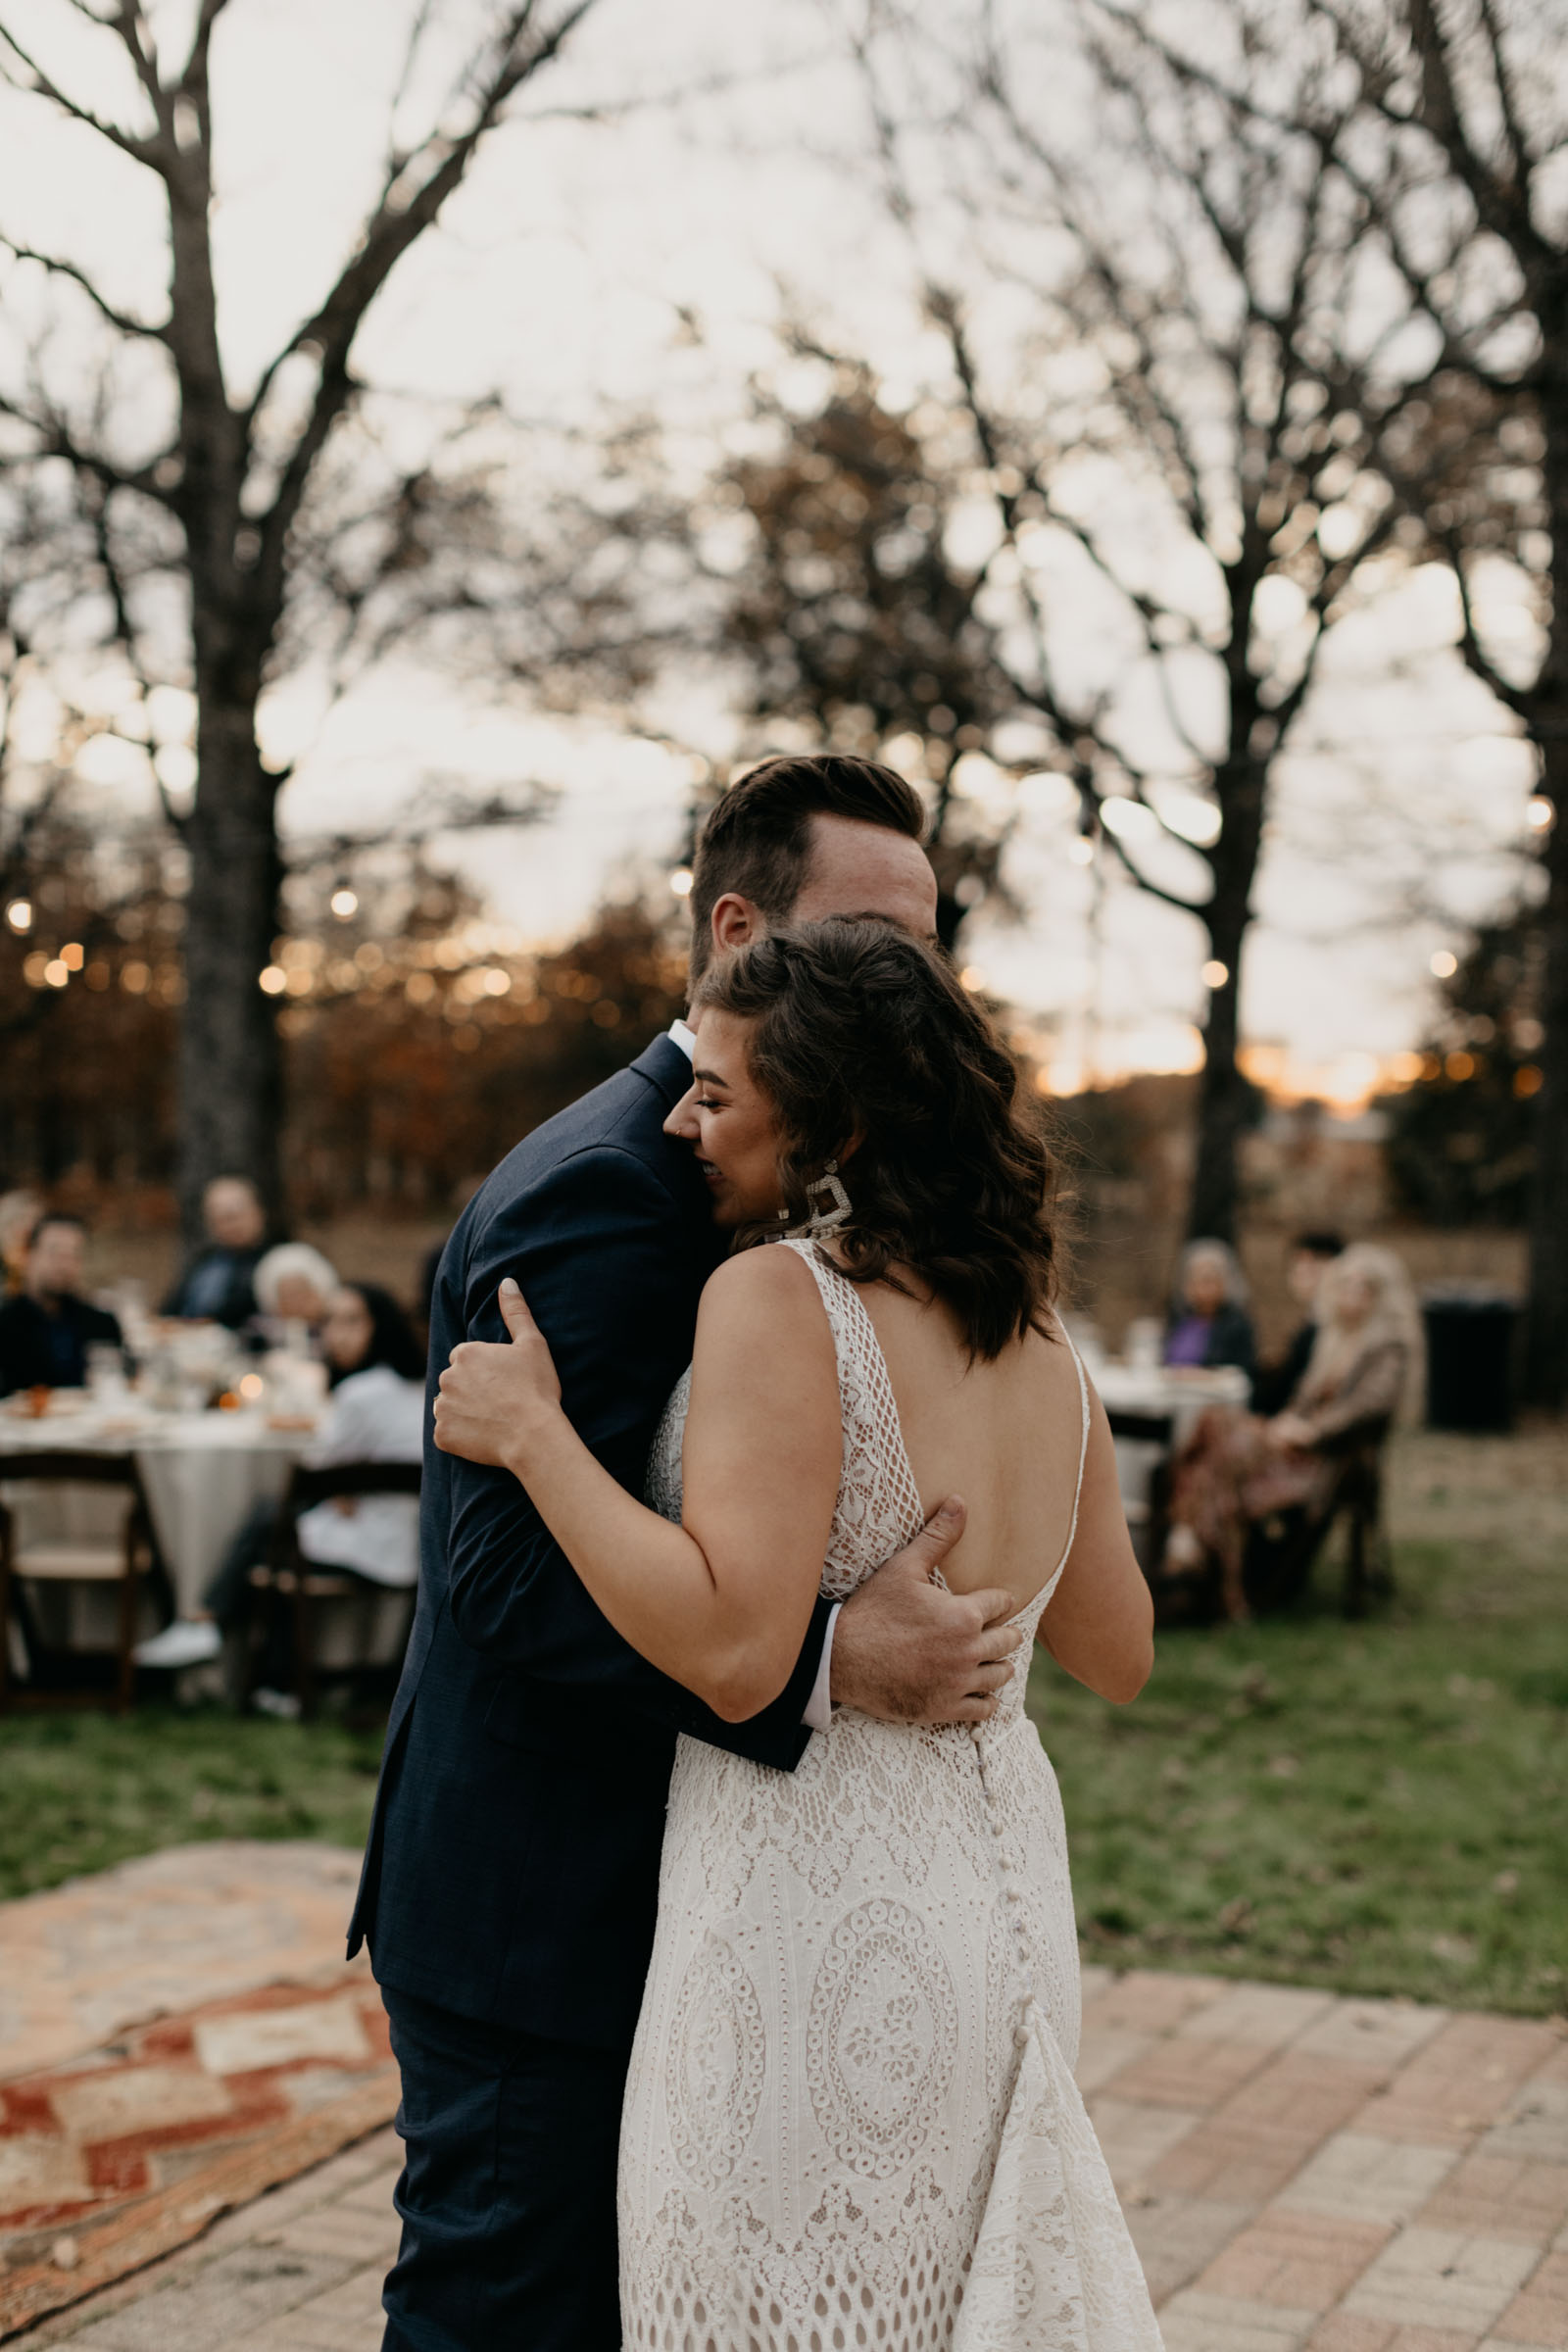 Bride and groom sharing romantic first dance outdoors